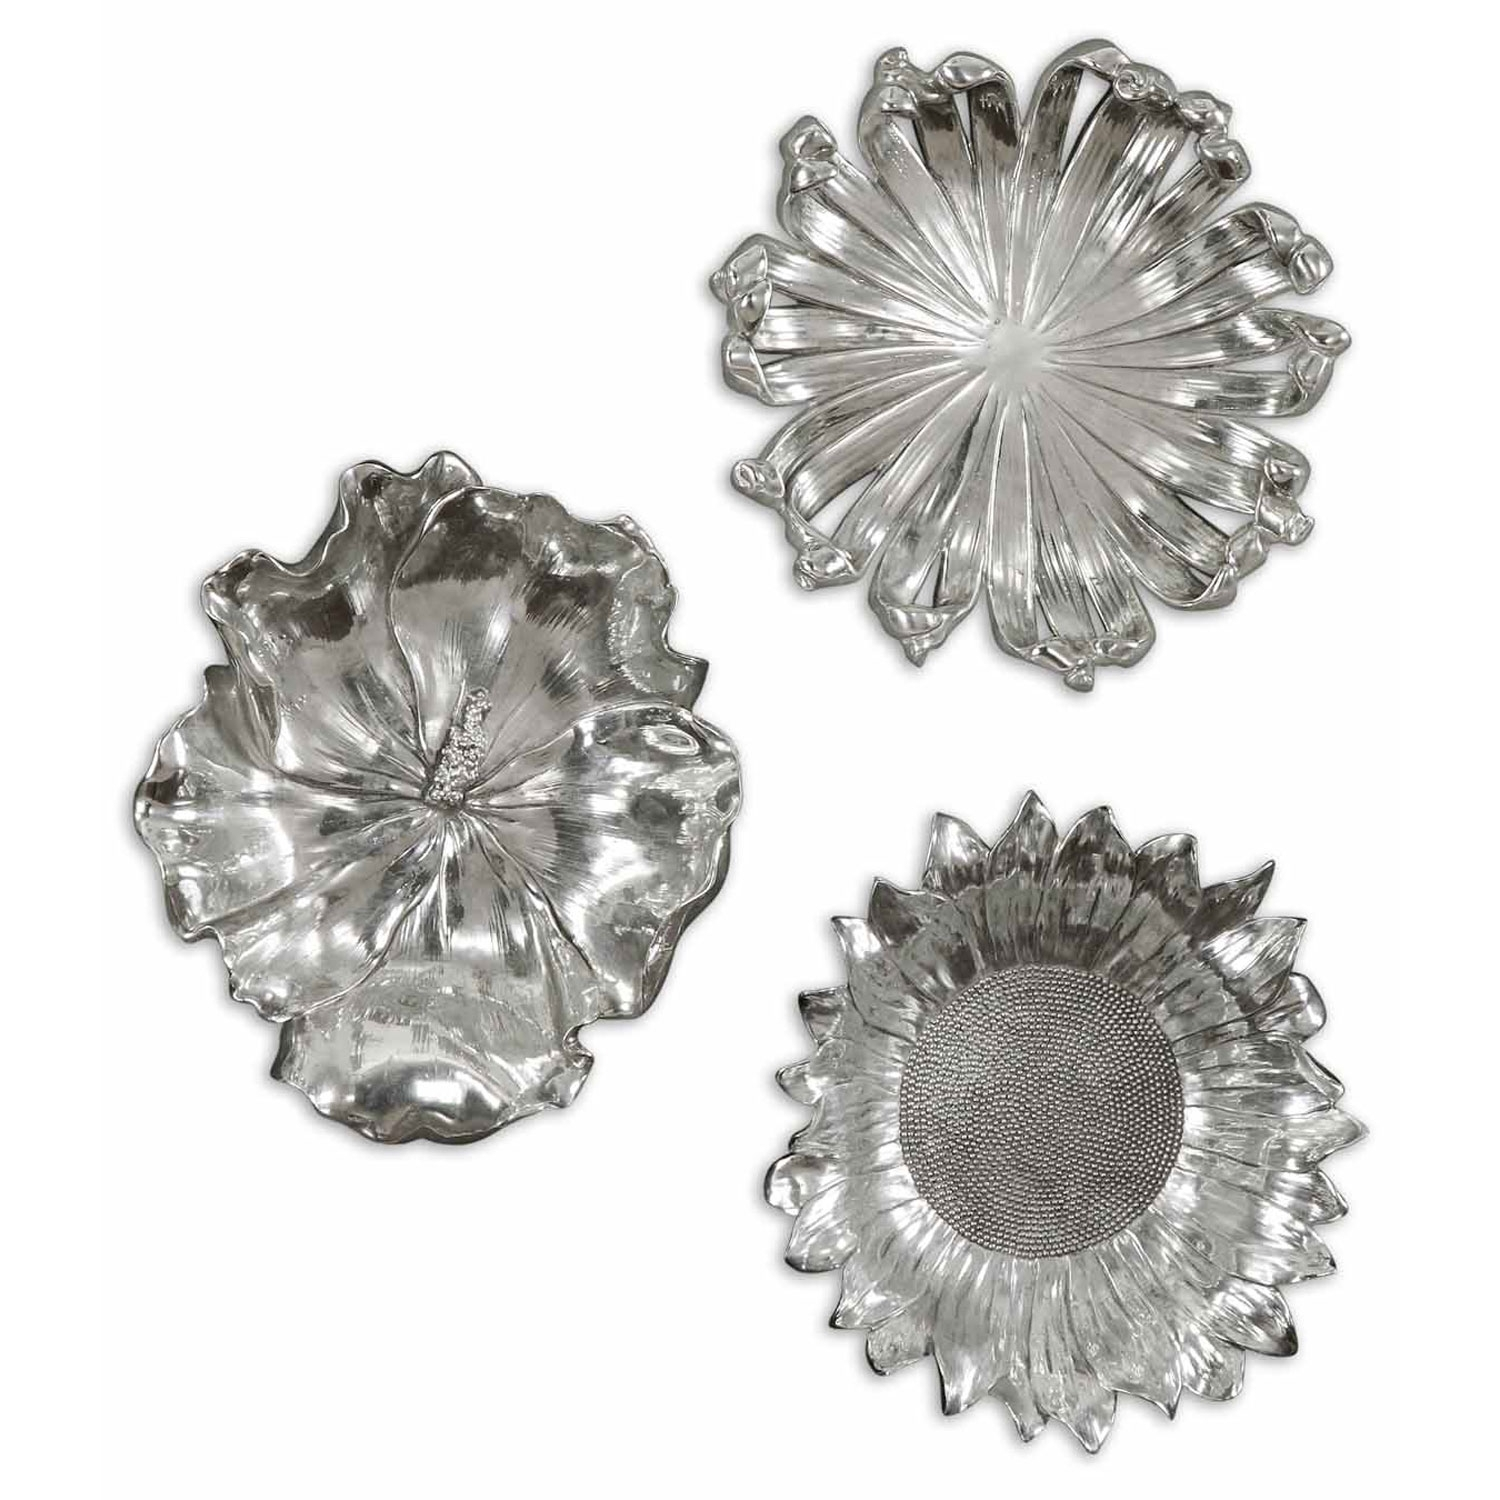 Uttermost Silver Flowers Metal Wall Art, Set Of Three 08503 | Bellacor Throughout Recent Silver Wall Art (View 20 of 20)